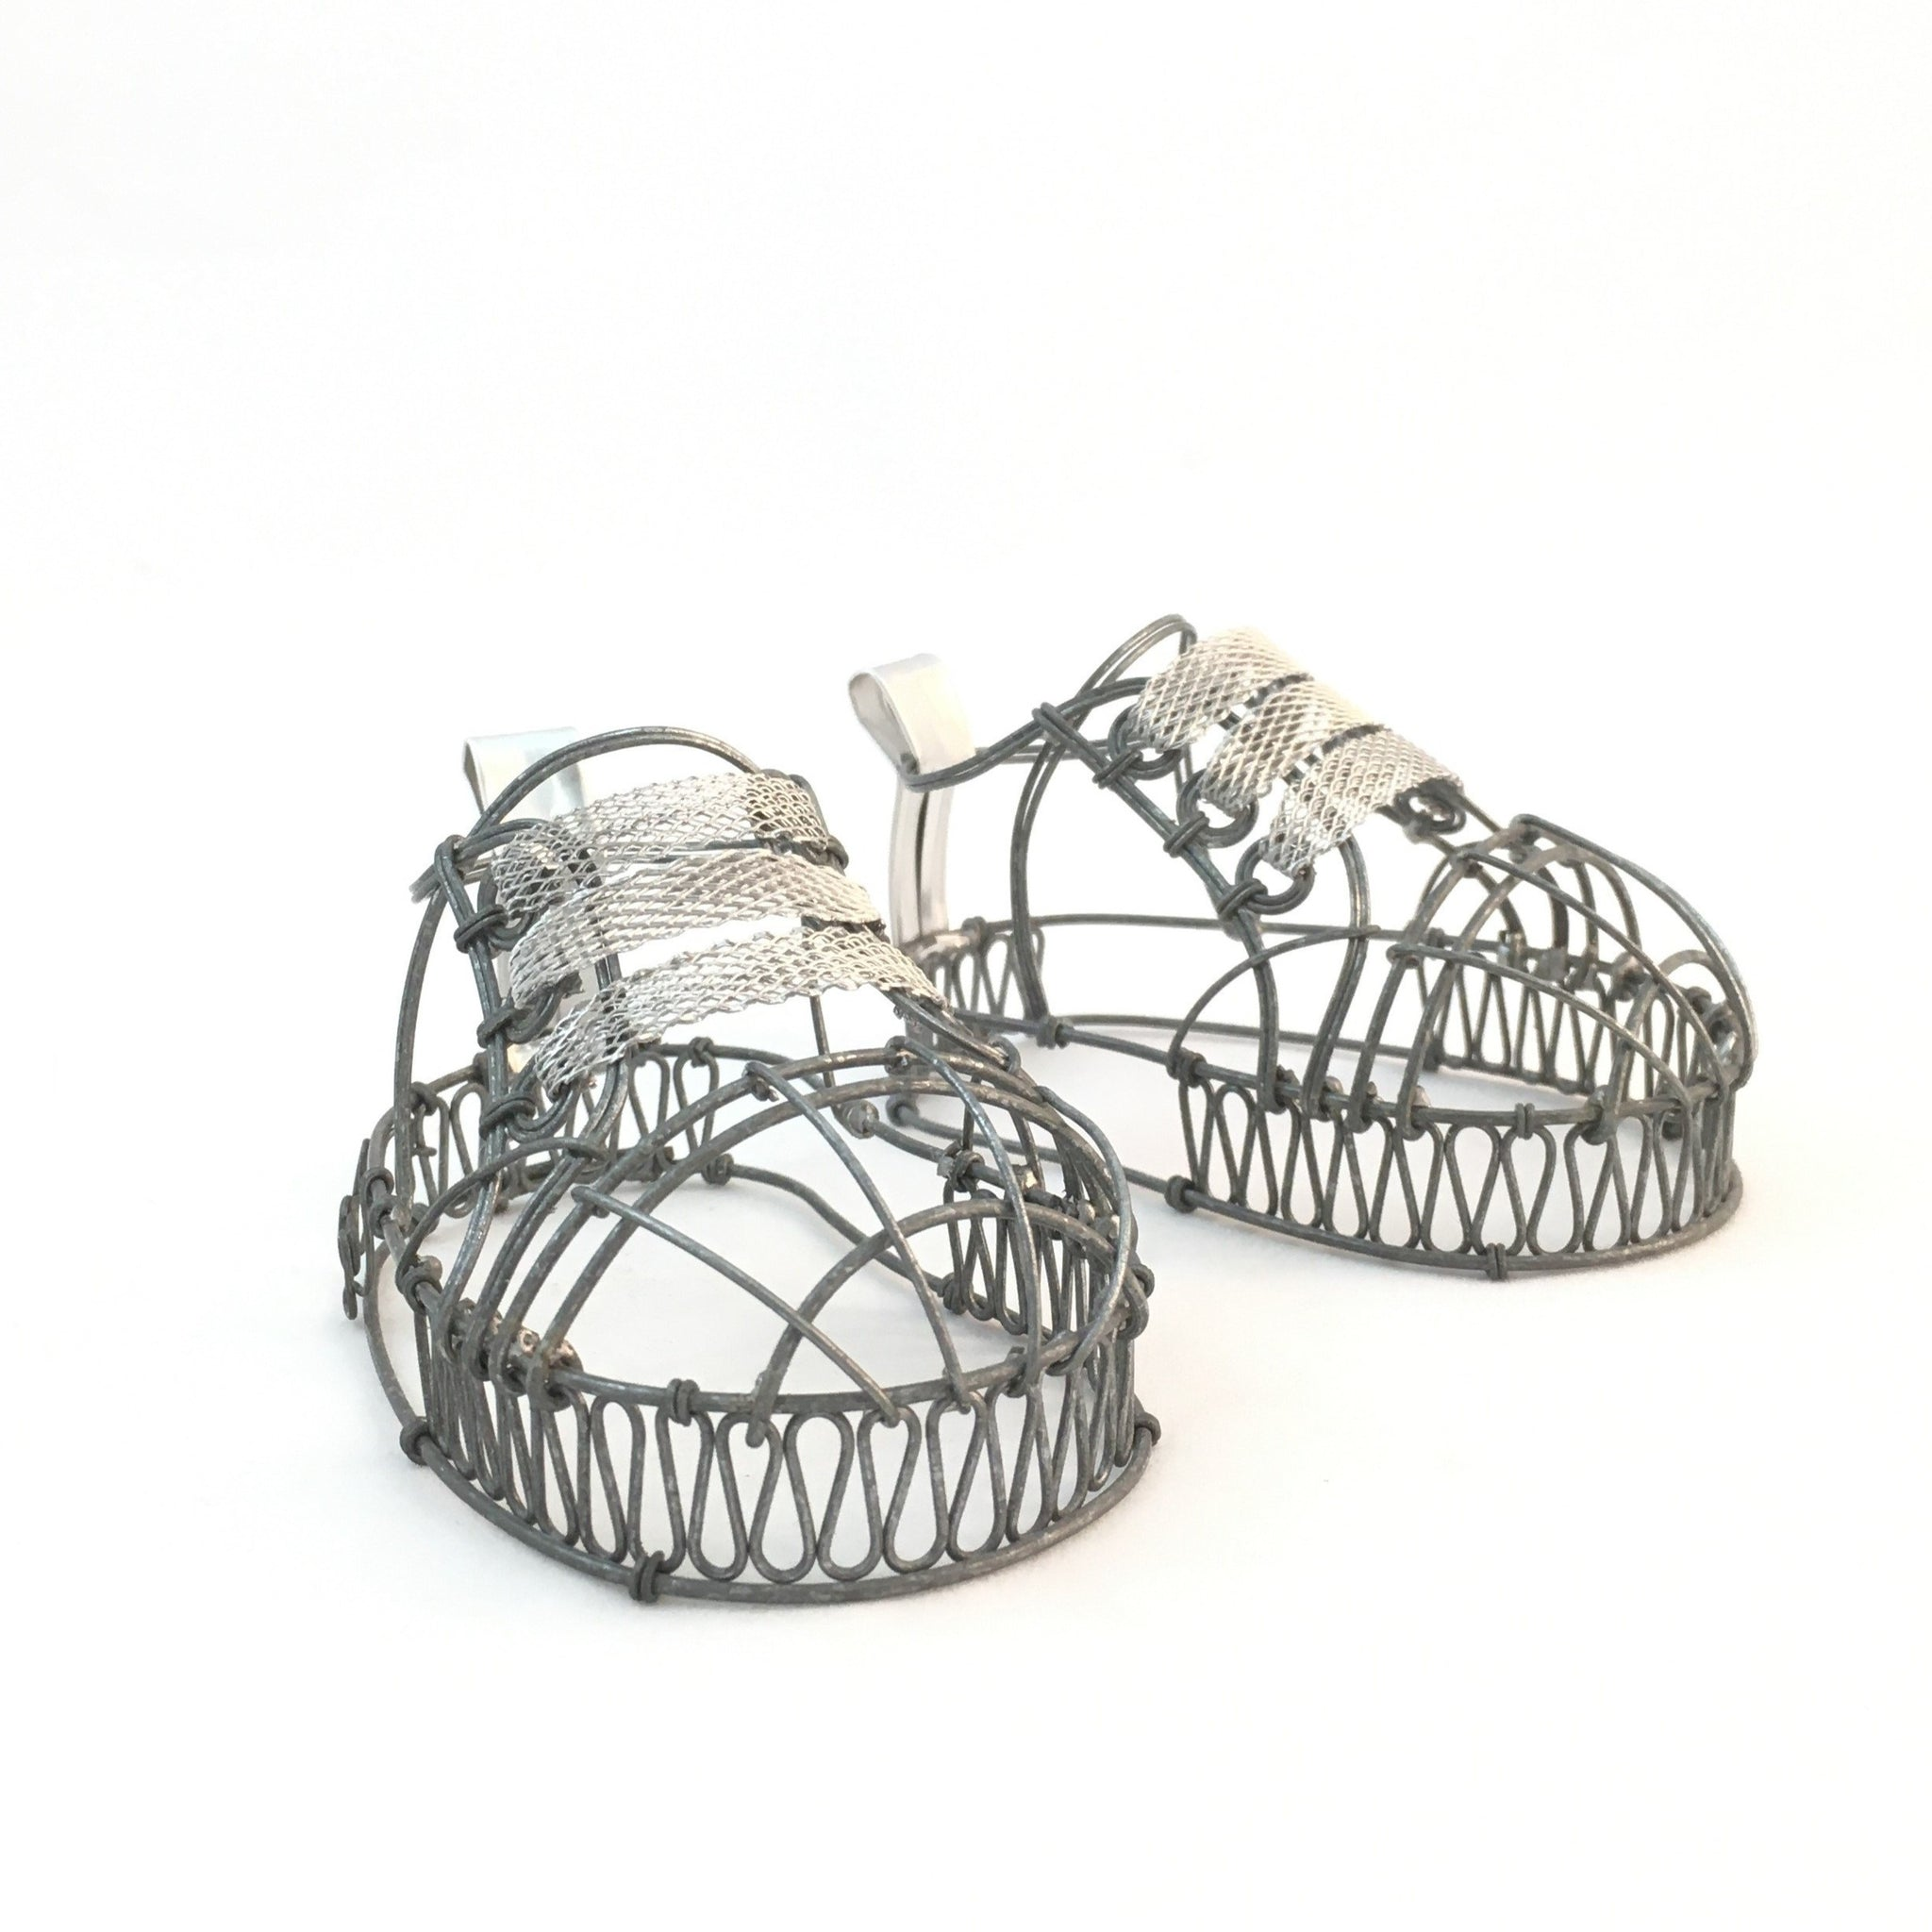 Wire baby shoes by Natalie Fong